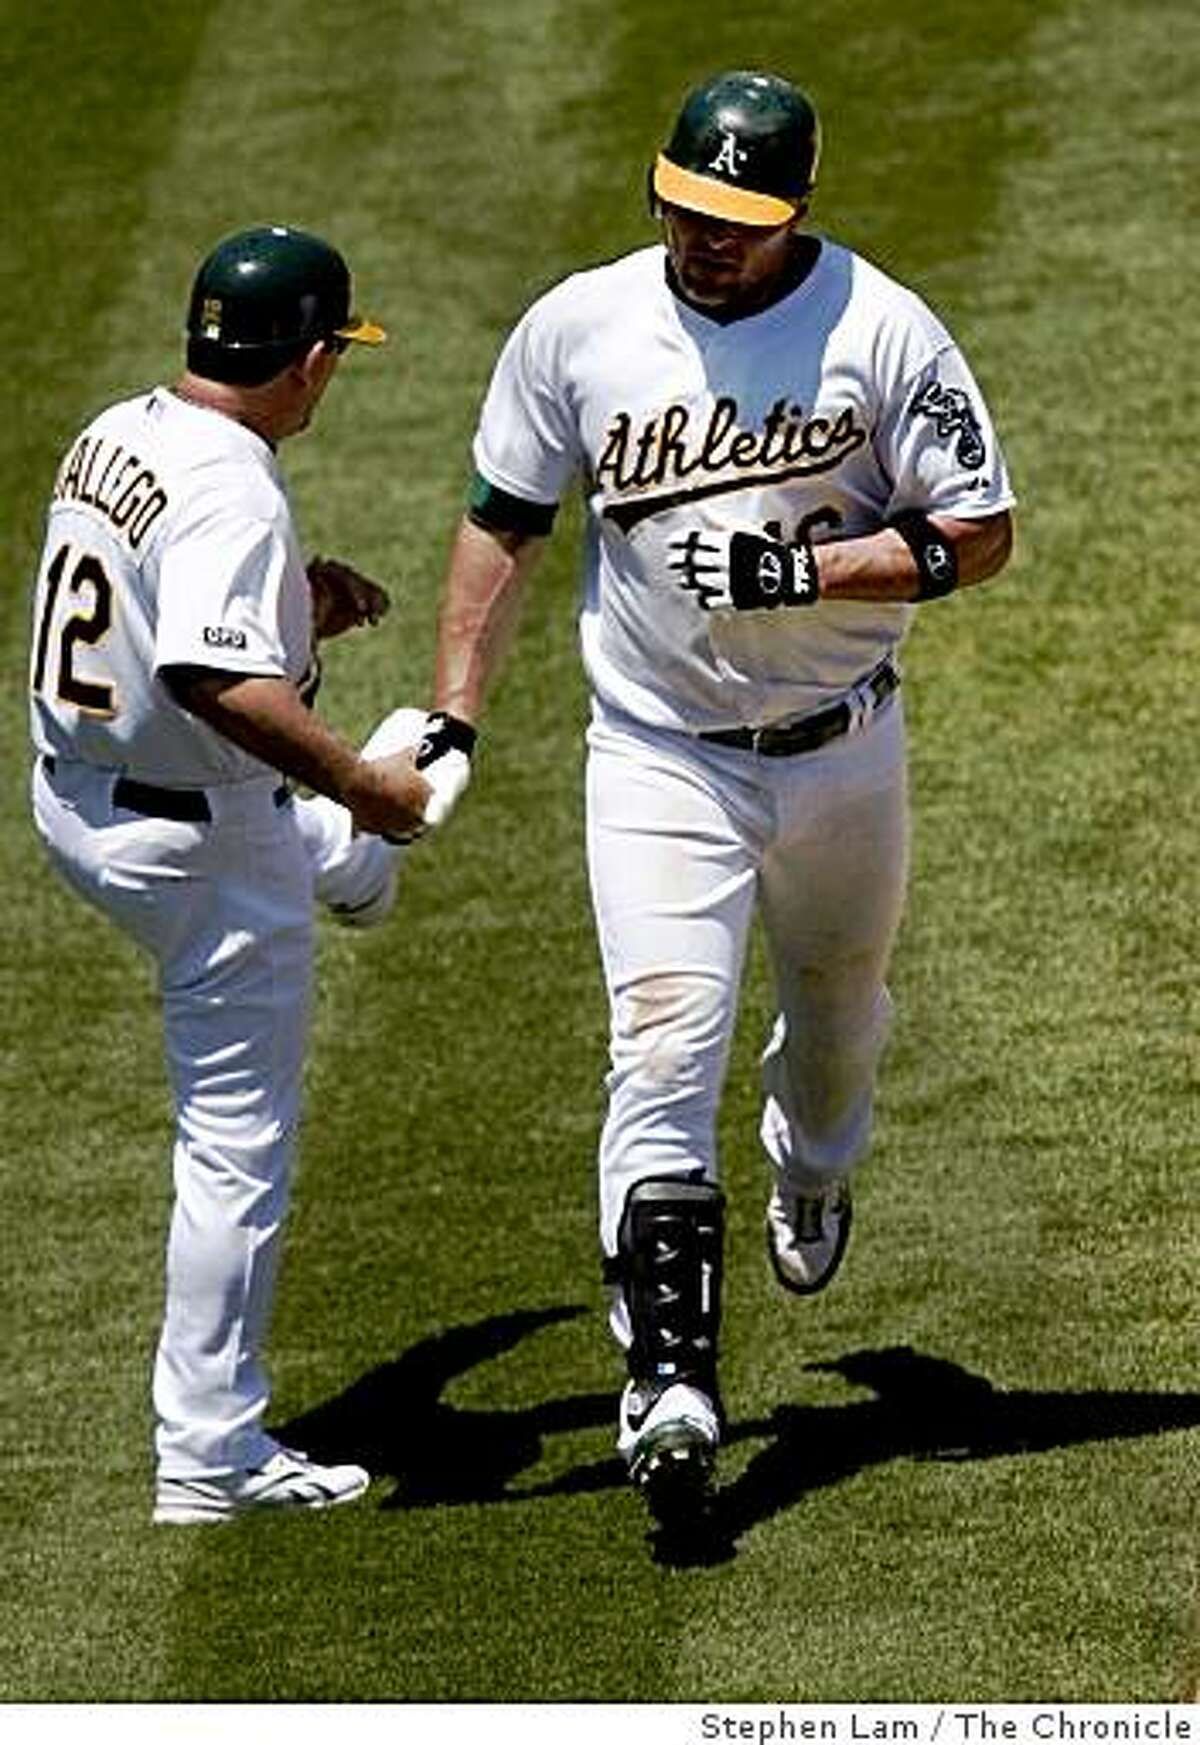 Jason Giambi (16), right, of the Oakland Athletics is being congratulated by third base coach Mike Gallego (12), left, after scoring a 2-run home run in the sixth inning against the Detroit Tigers at the Oakland-Alameda County Coliseum in Oakland, Calif. on Wednesday, July 1, 2009. The Athletics won 5-1